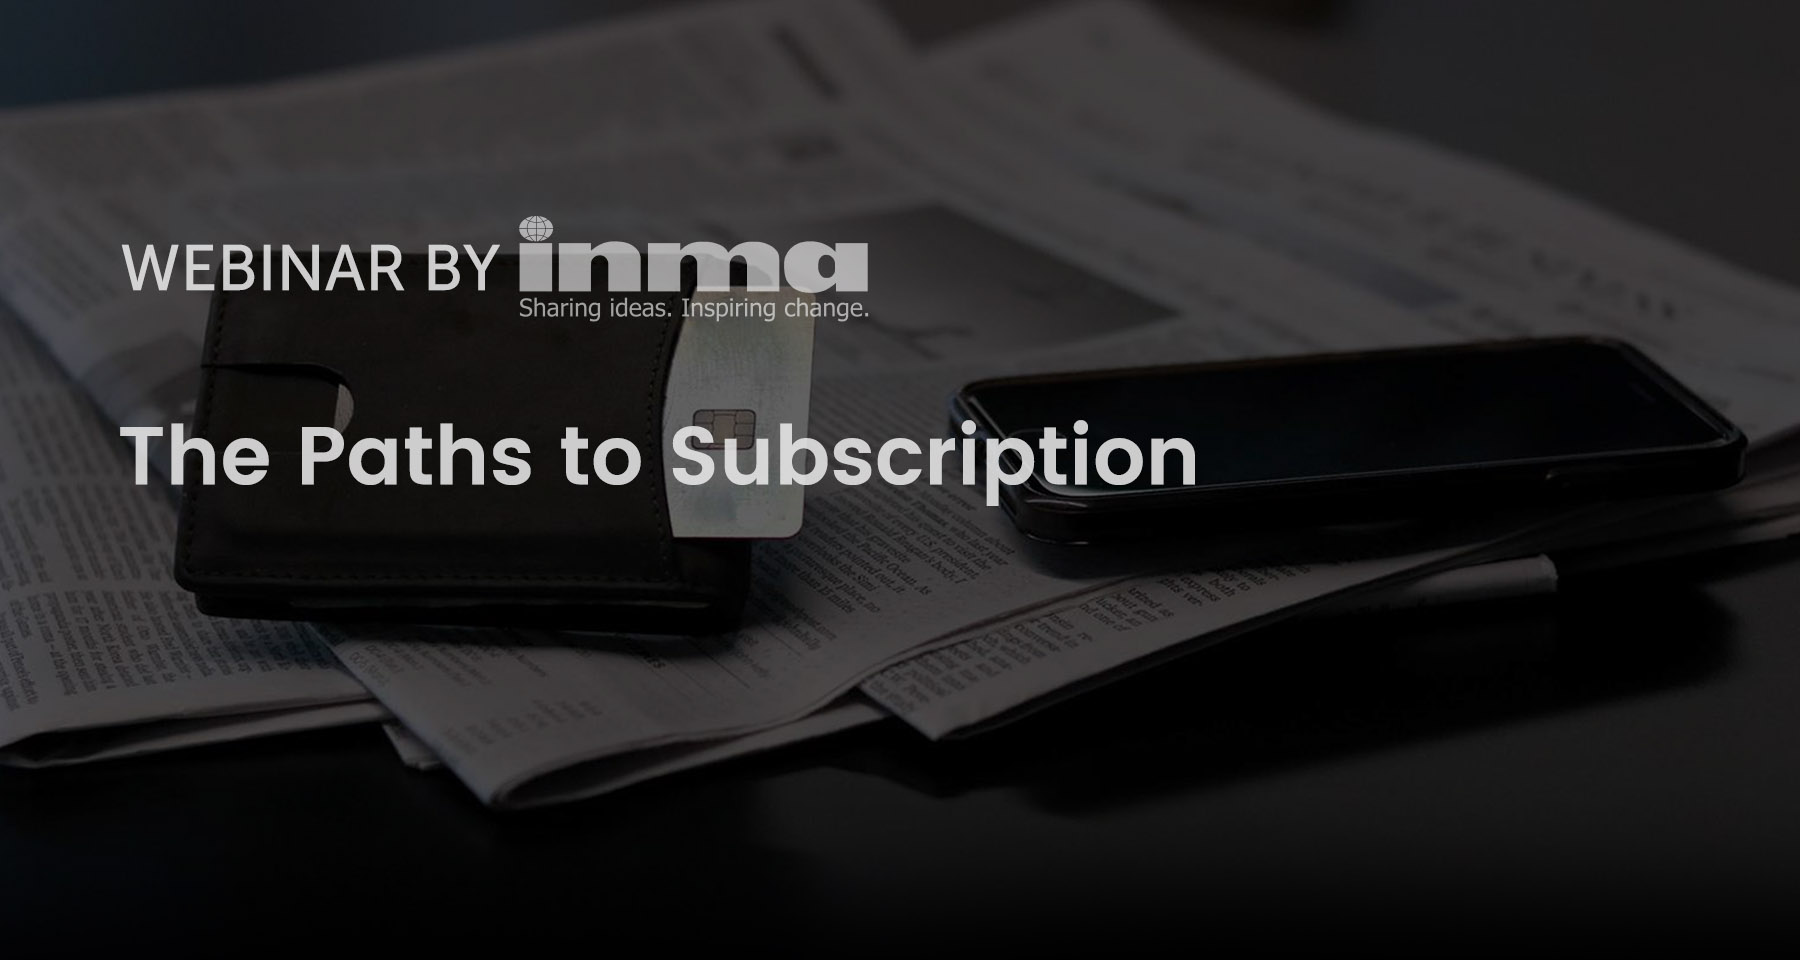 Upcoming INMA Webinar: The paths to subscription